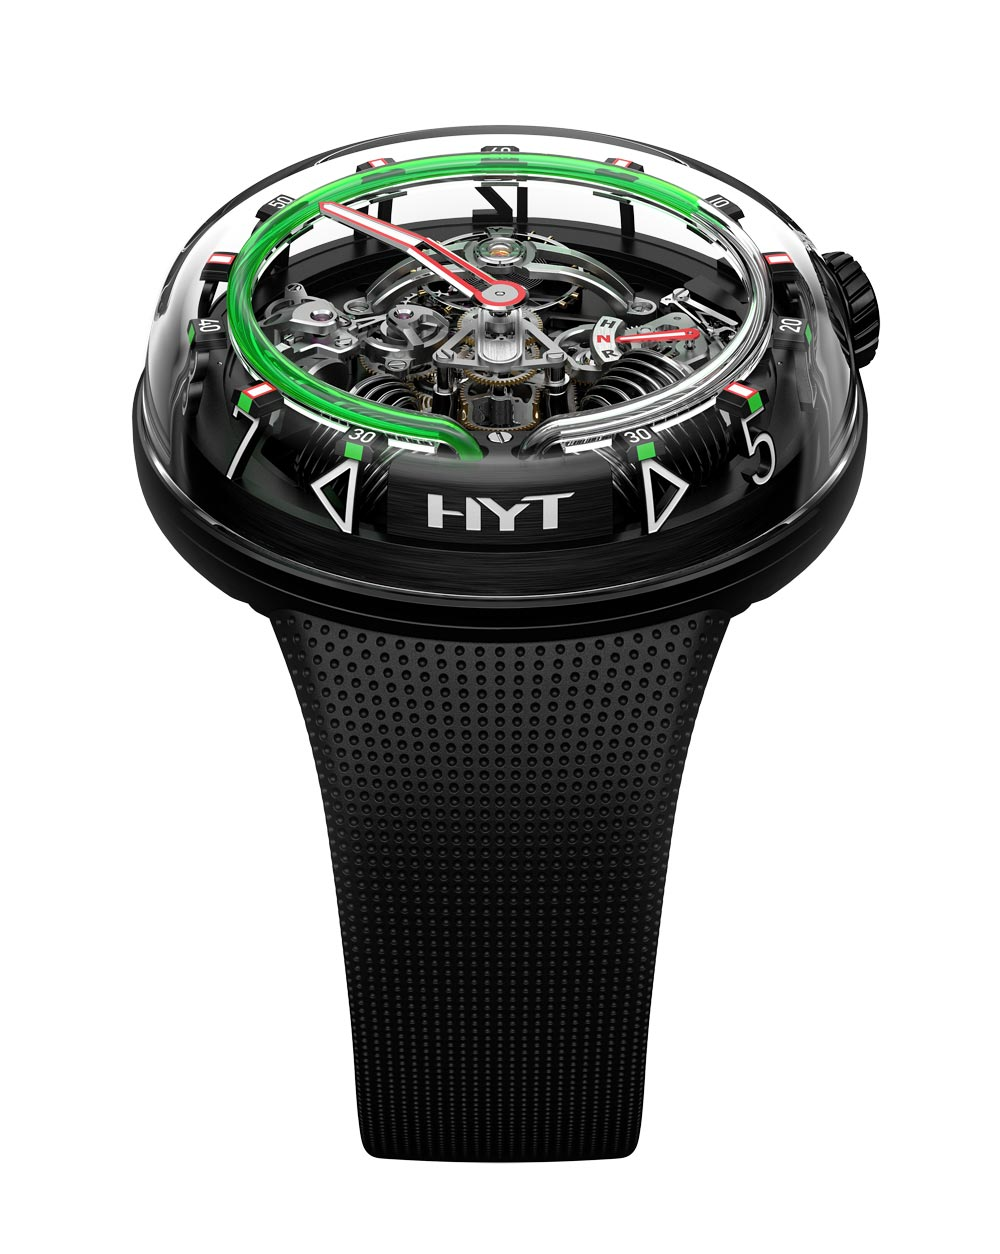 Reloj H20 de HYT ( The Hydro Mechanical Horologistic en color verde